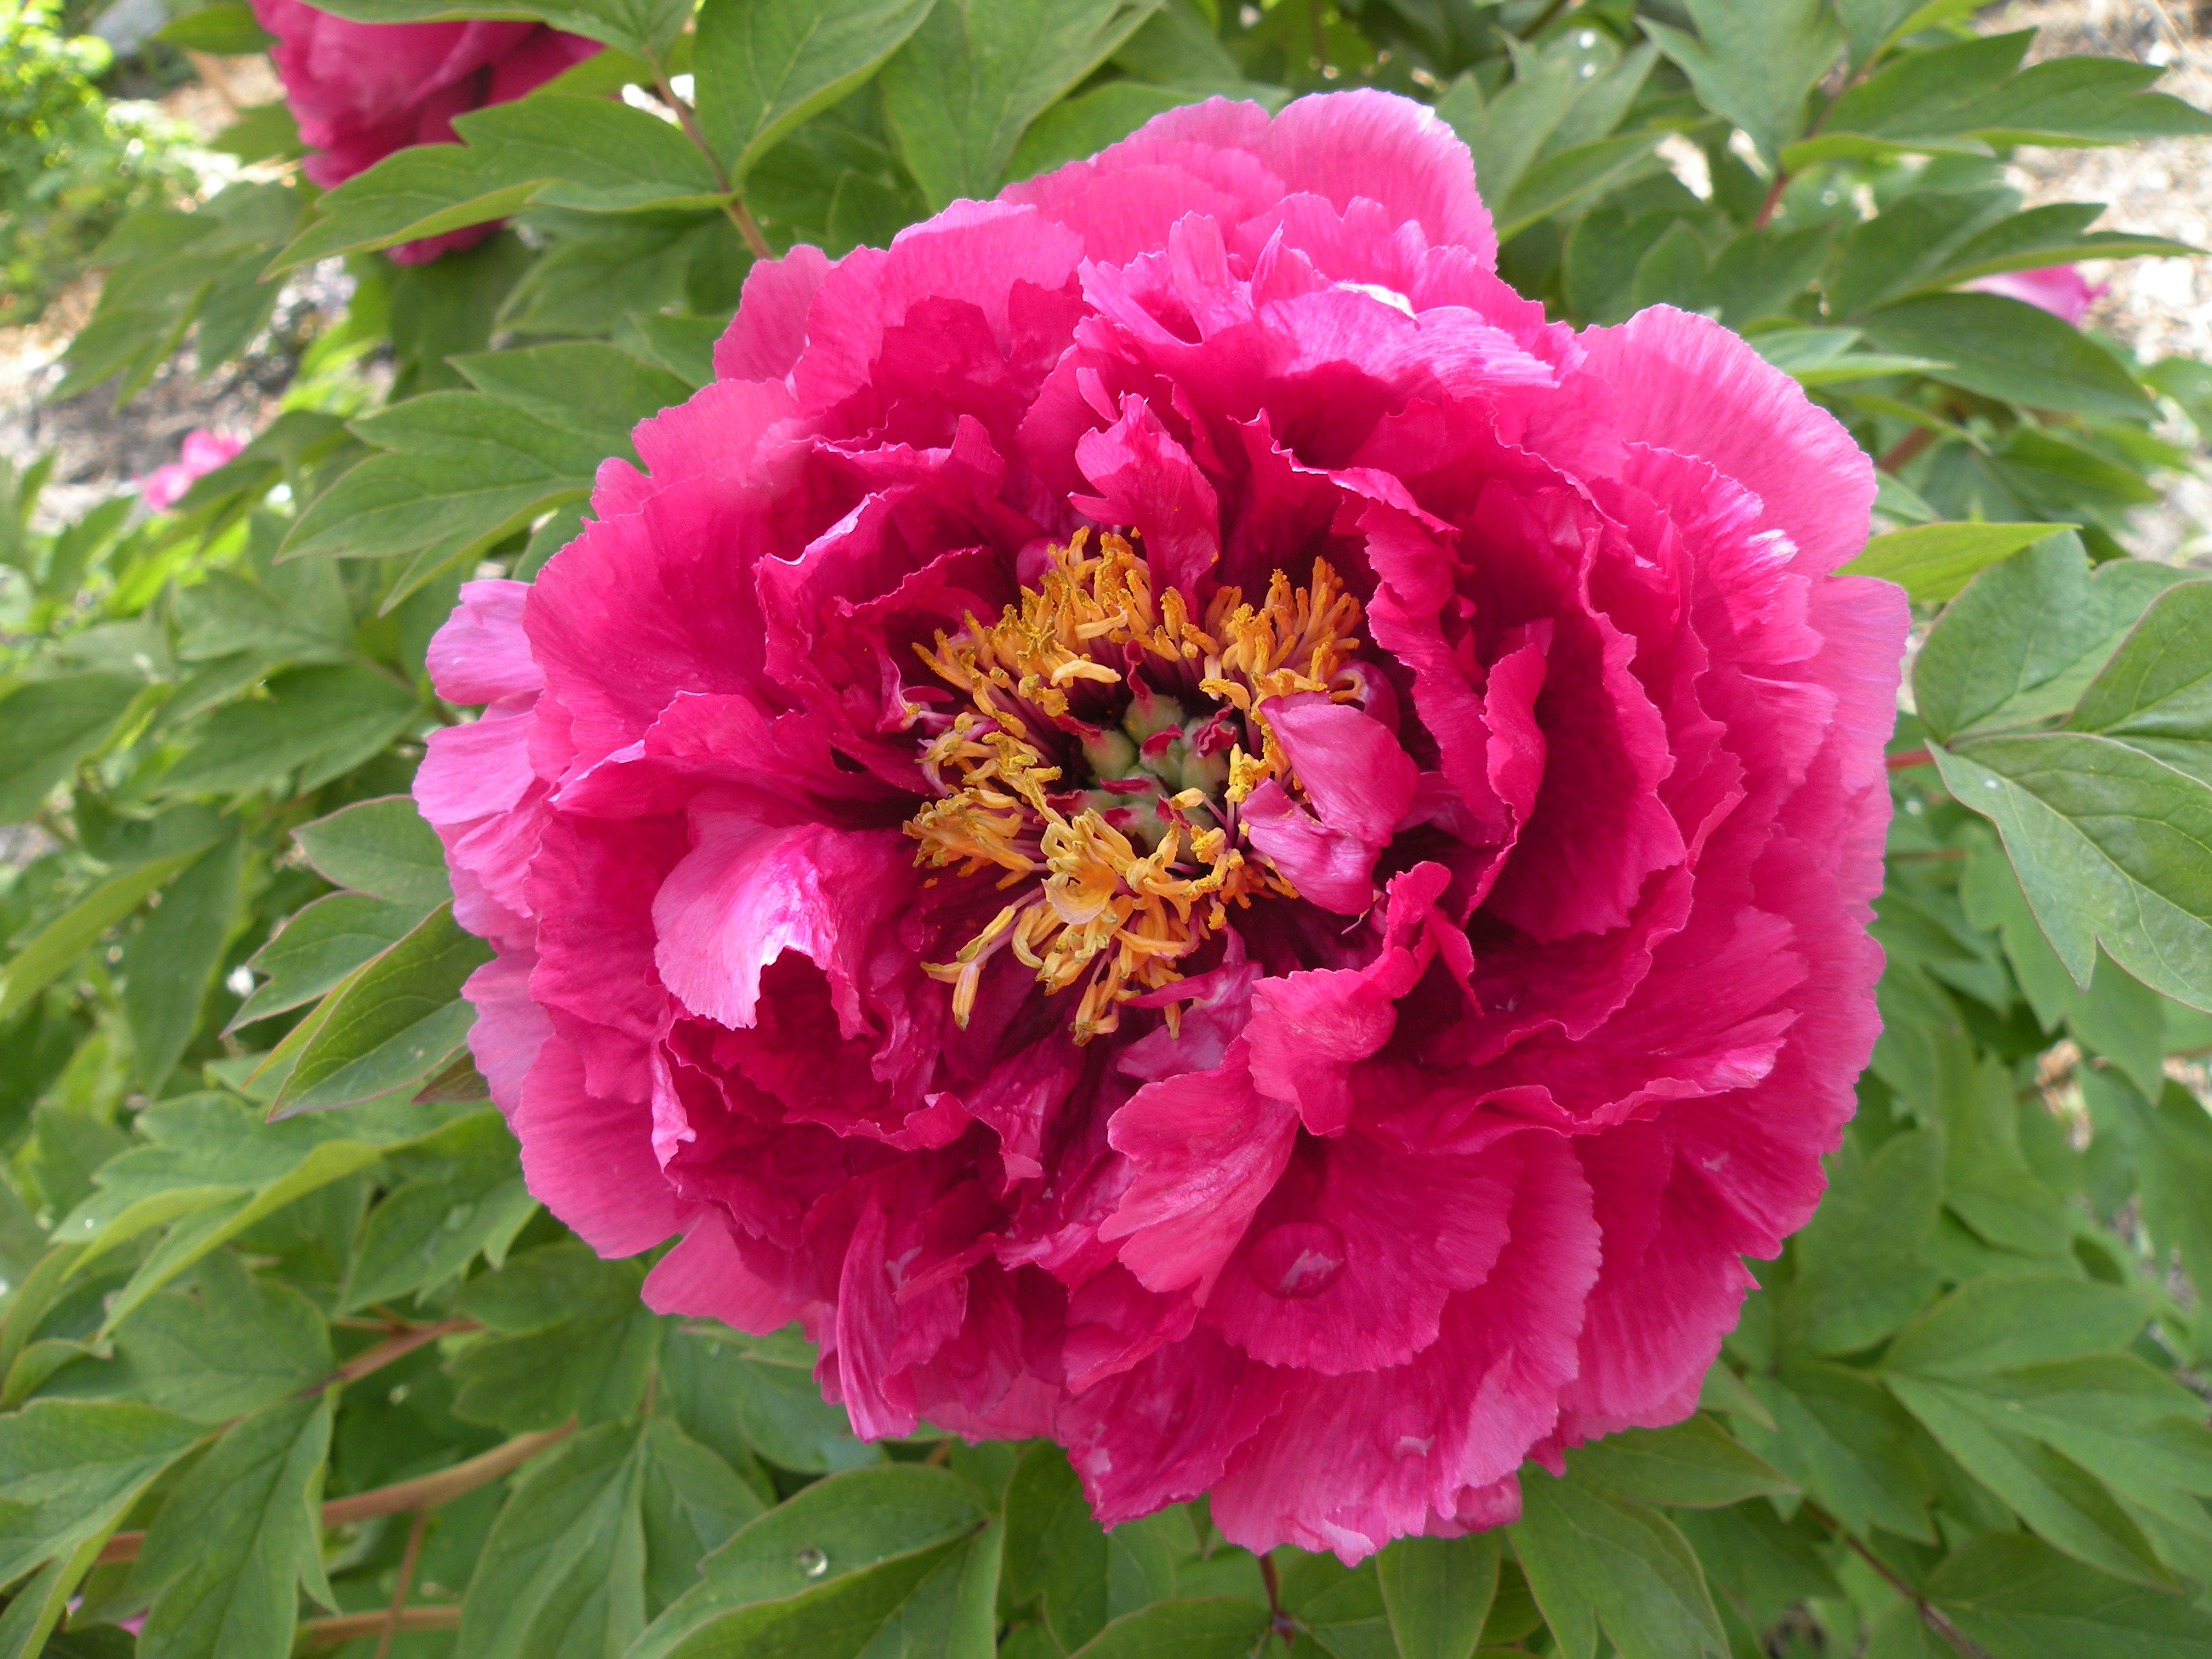 Peony flower forms cricket hill garden luoyang red luoyang hong chinese tree peony nvjuhfo Gallery